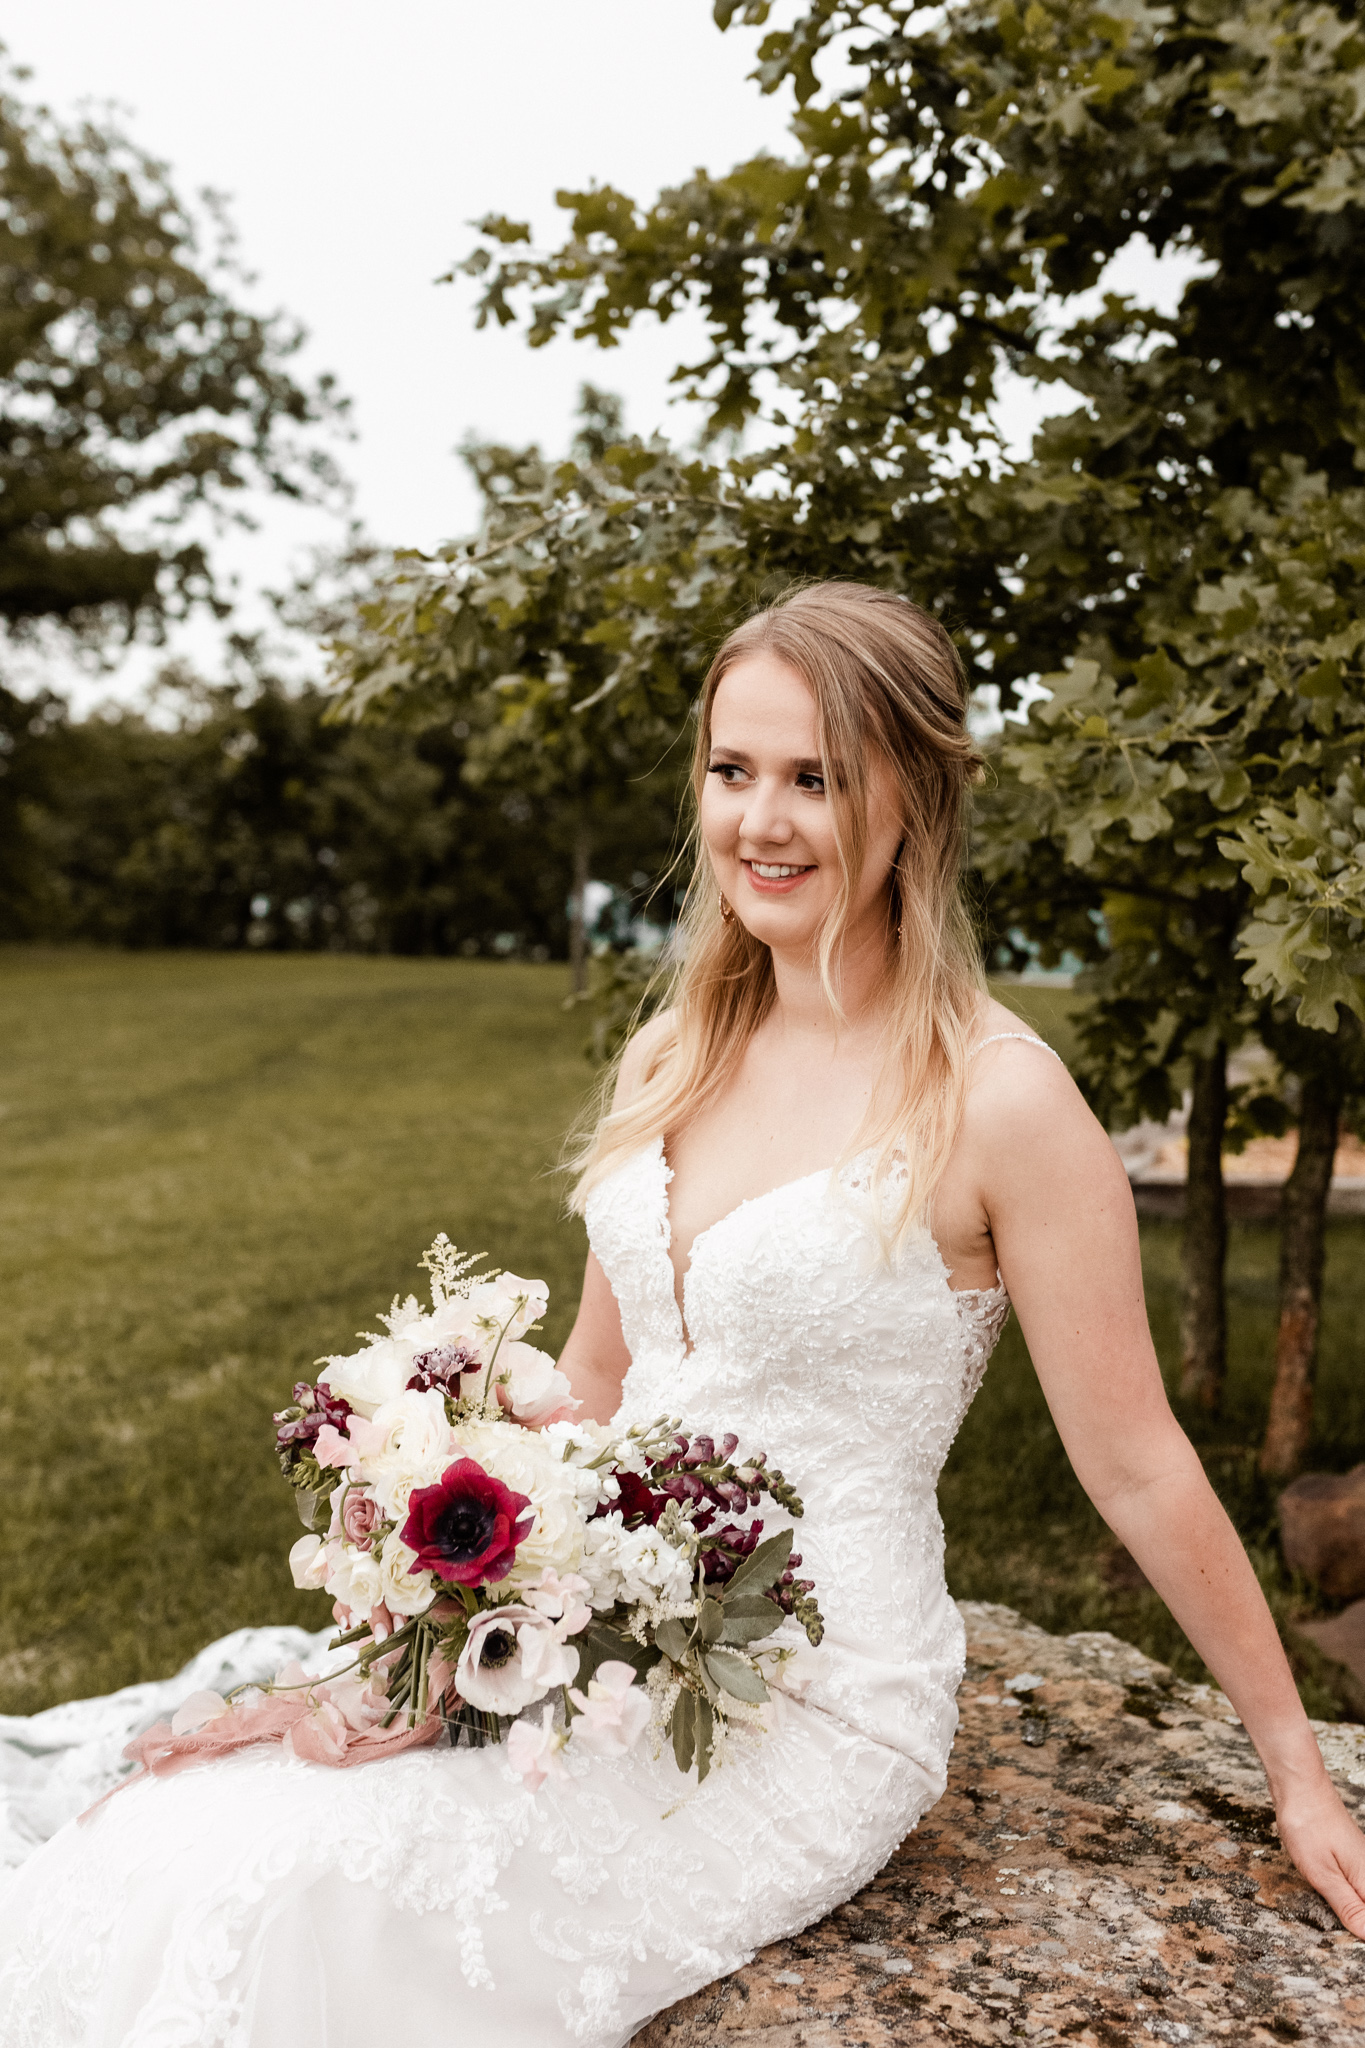 Brittany | Romantic Outdoor Bridals | Oklahoma Wedding Photographer-30.jpg